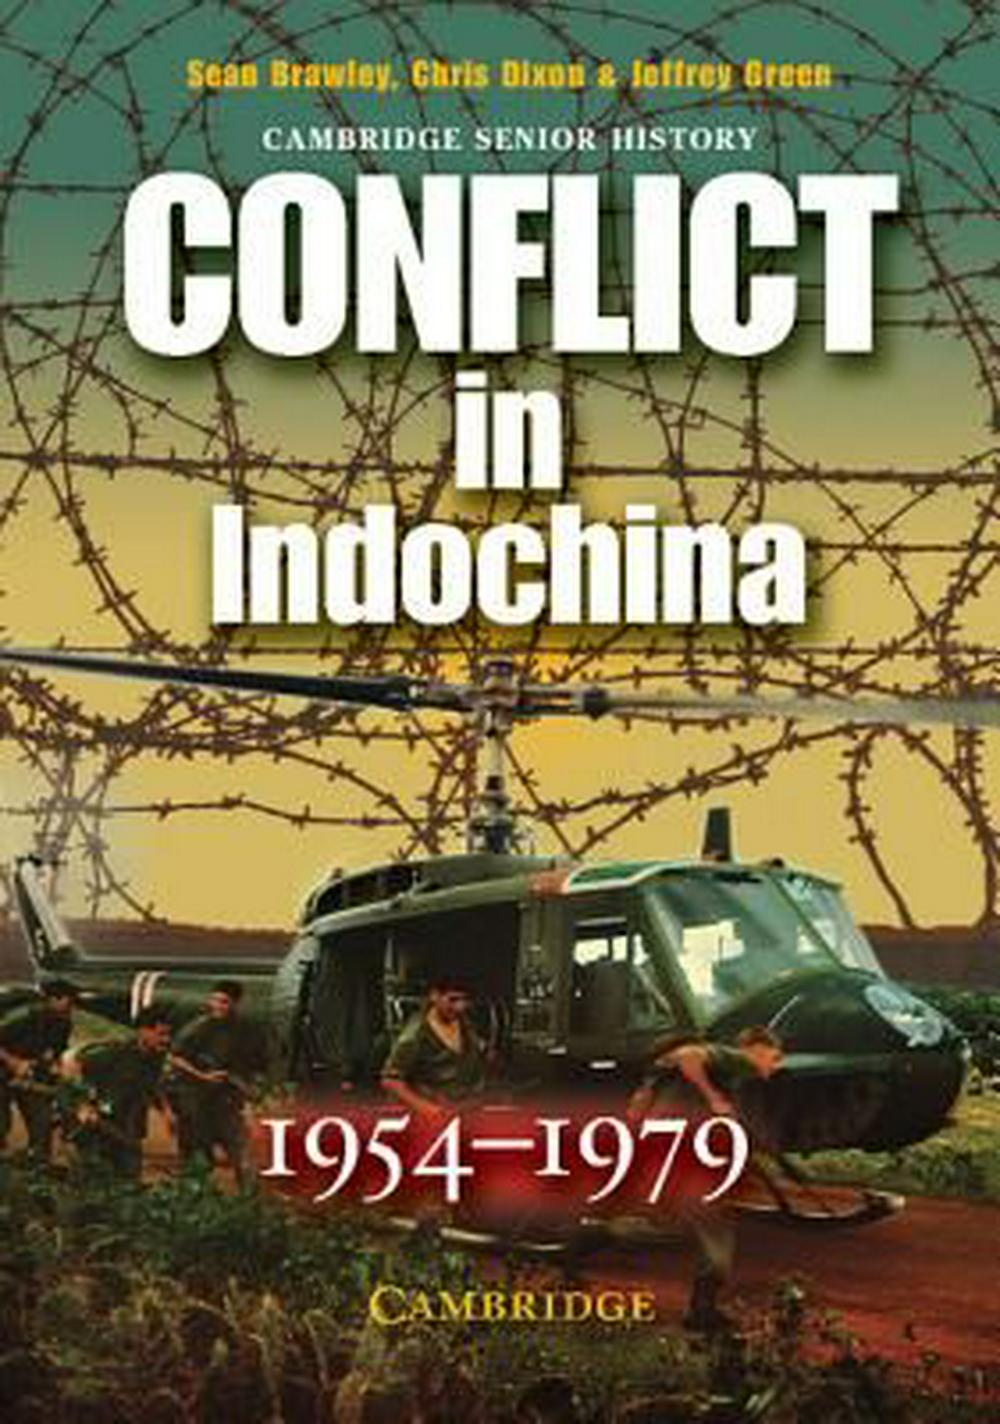 Conflict in Indochina 1954-1979 by Sean Brawley, ISBN: 9780521618625